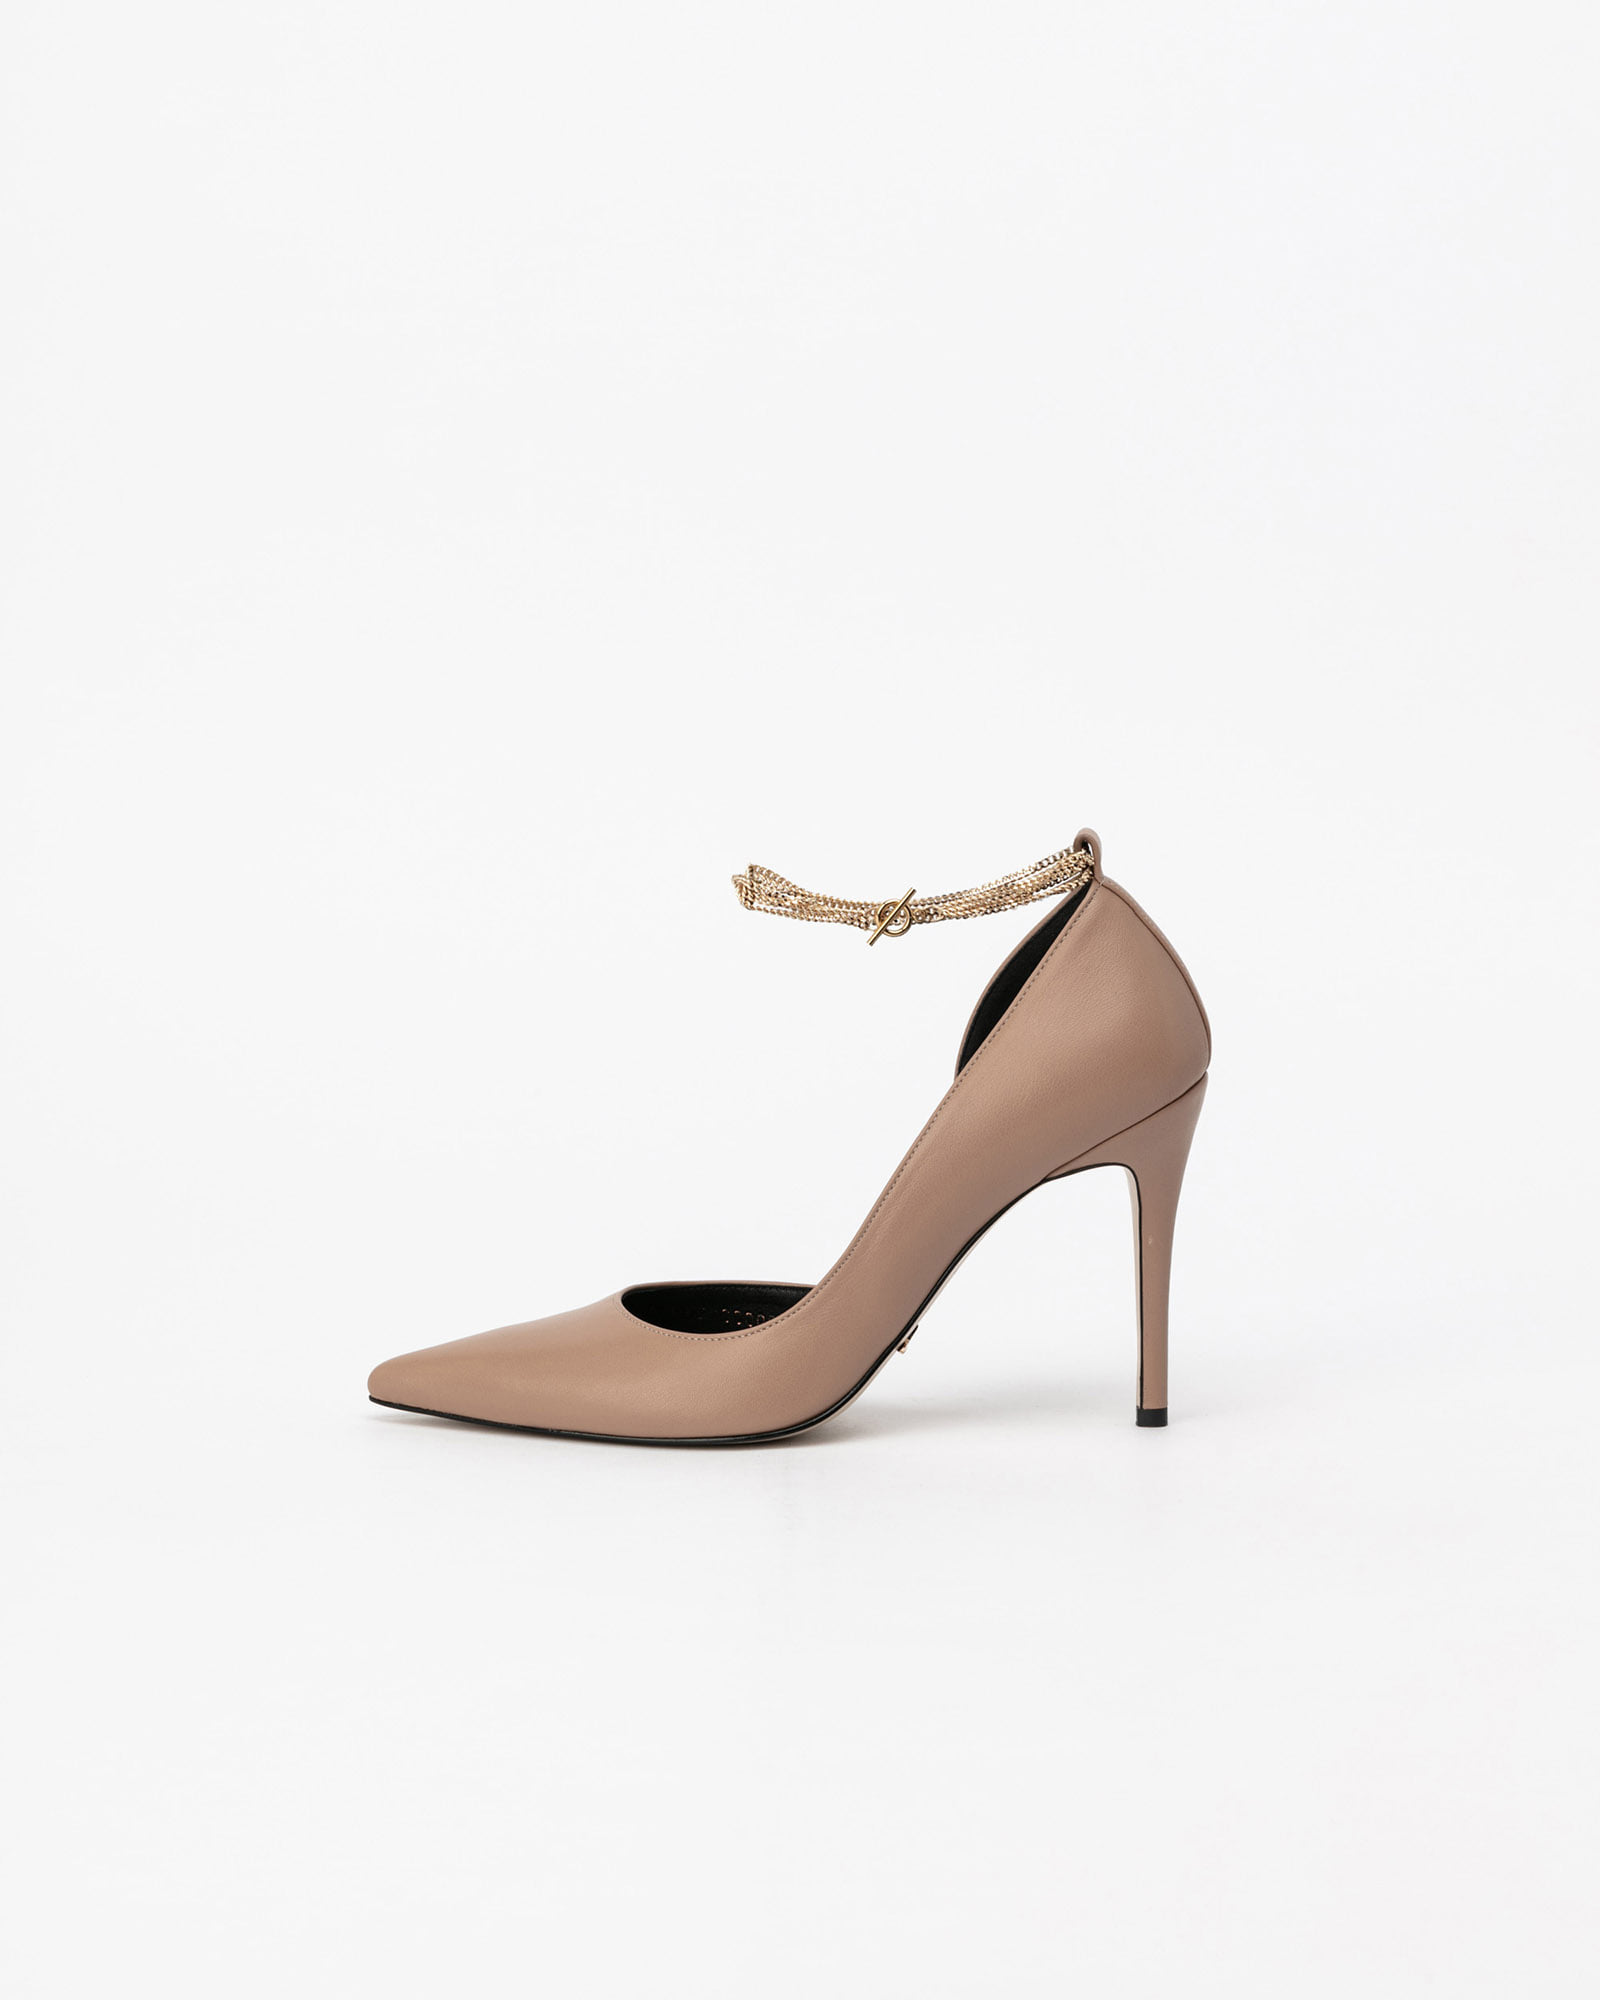 Cinque Chained Stiletto Pumps in Pinkish Beige